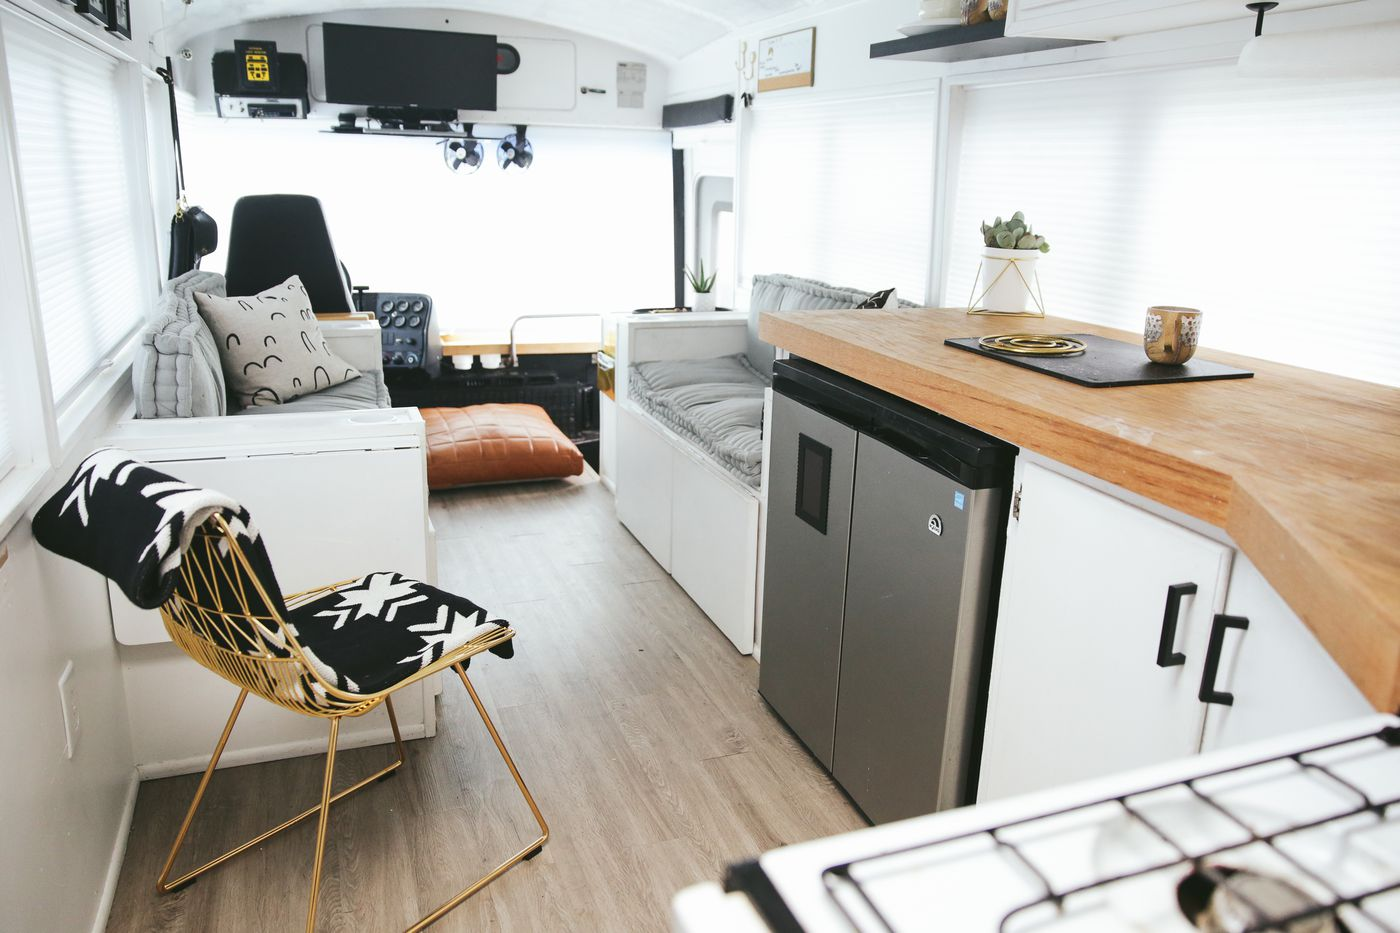 DIY camper conversion: 5 surprising vehicles for a home on